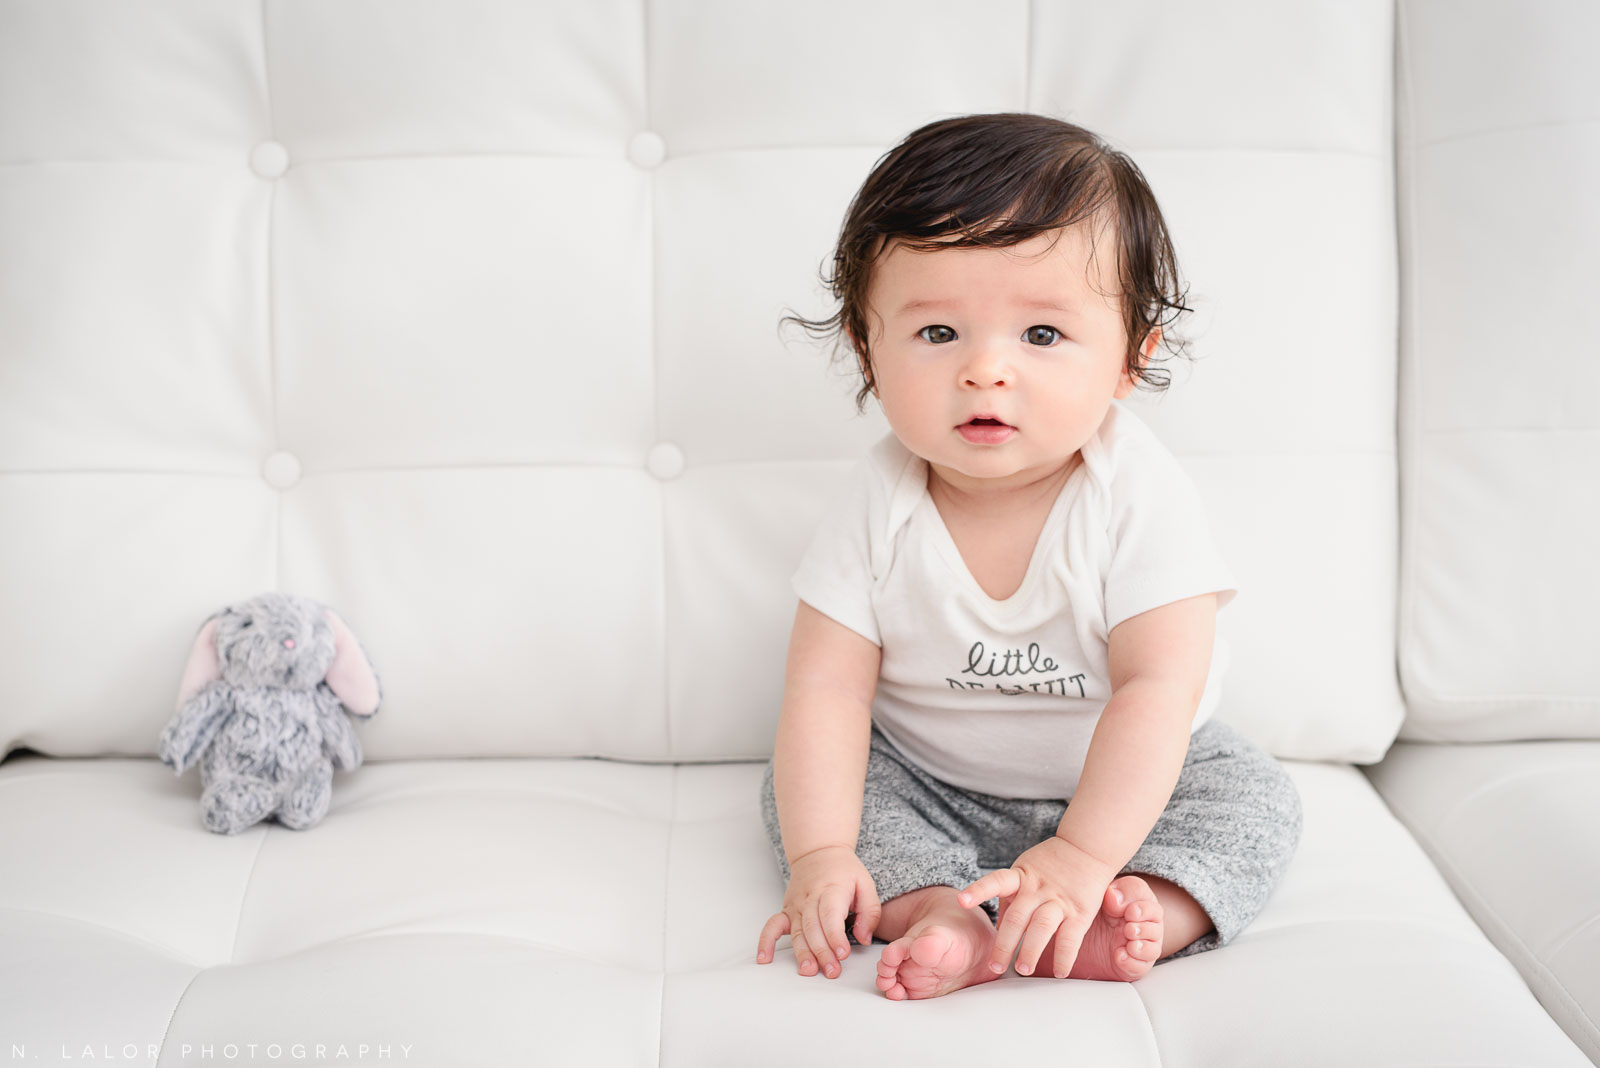 On the couch with his best friend. 6-month old baby studio photoshoot with N. Lalor Photography in Greenwich, Connecticut.